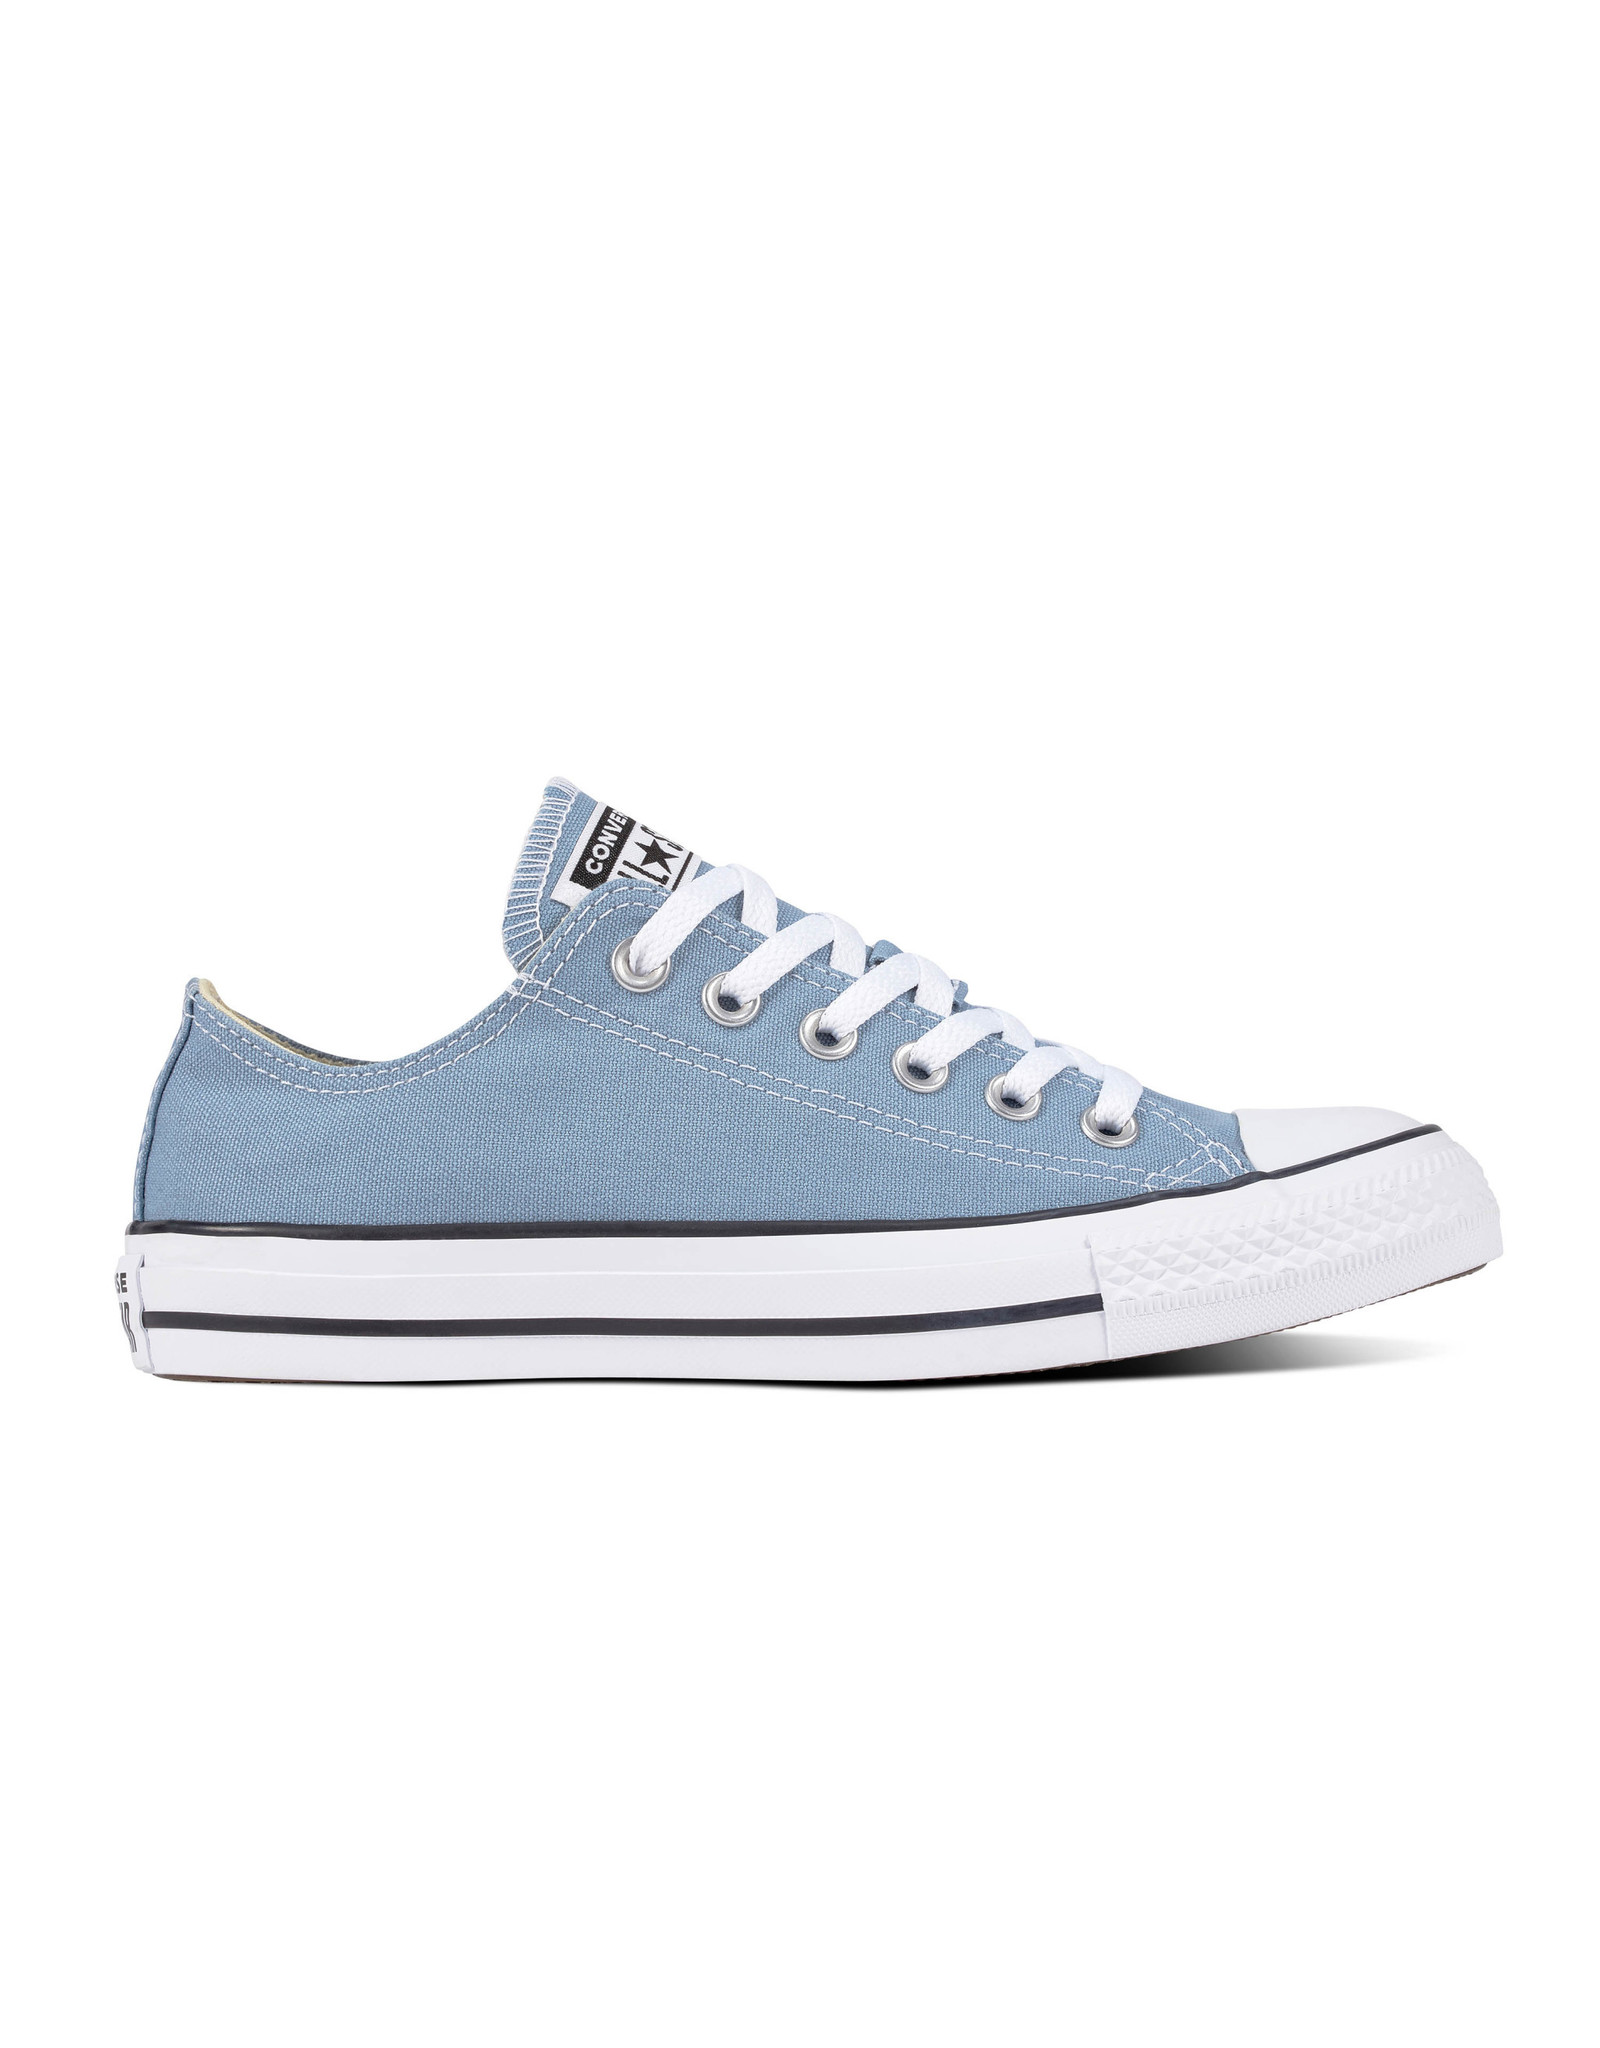 CONVERSE CHUCK TAYLOR OX WASHED DENIM C12WAS-162116C